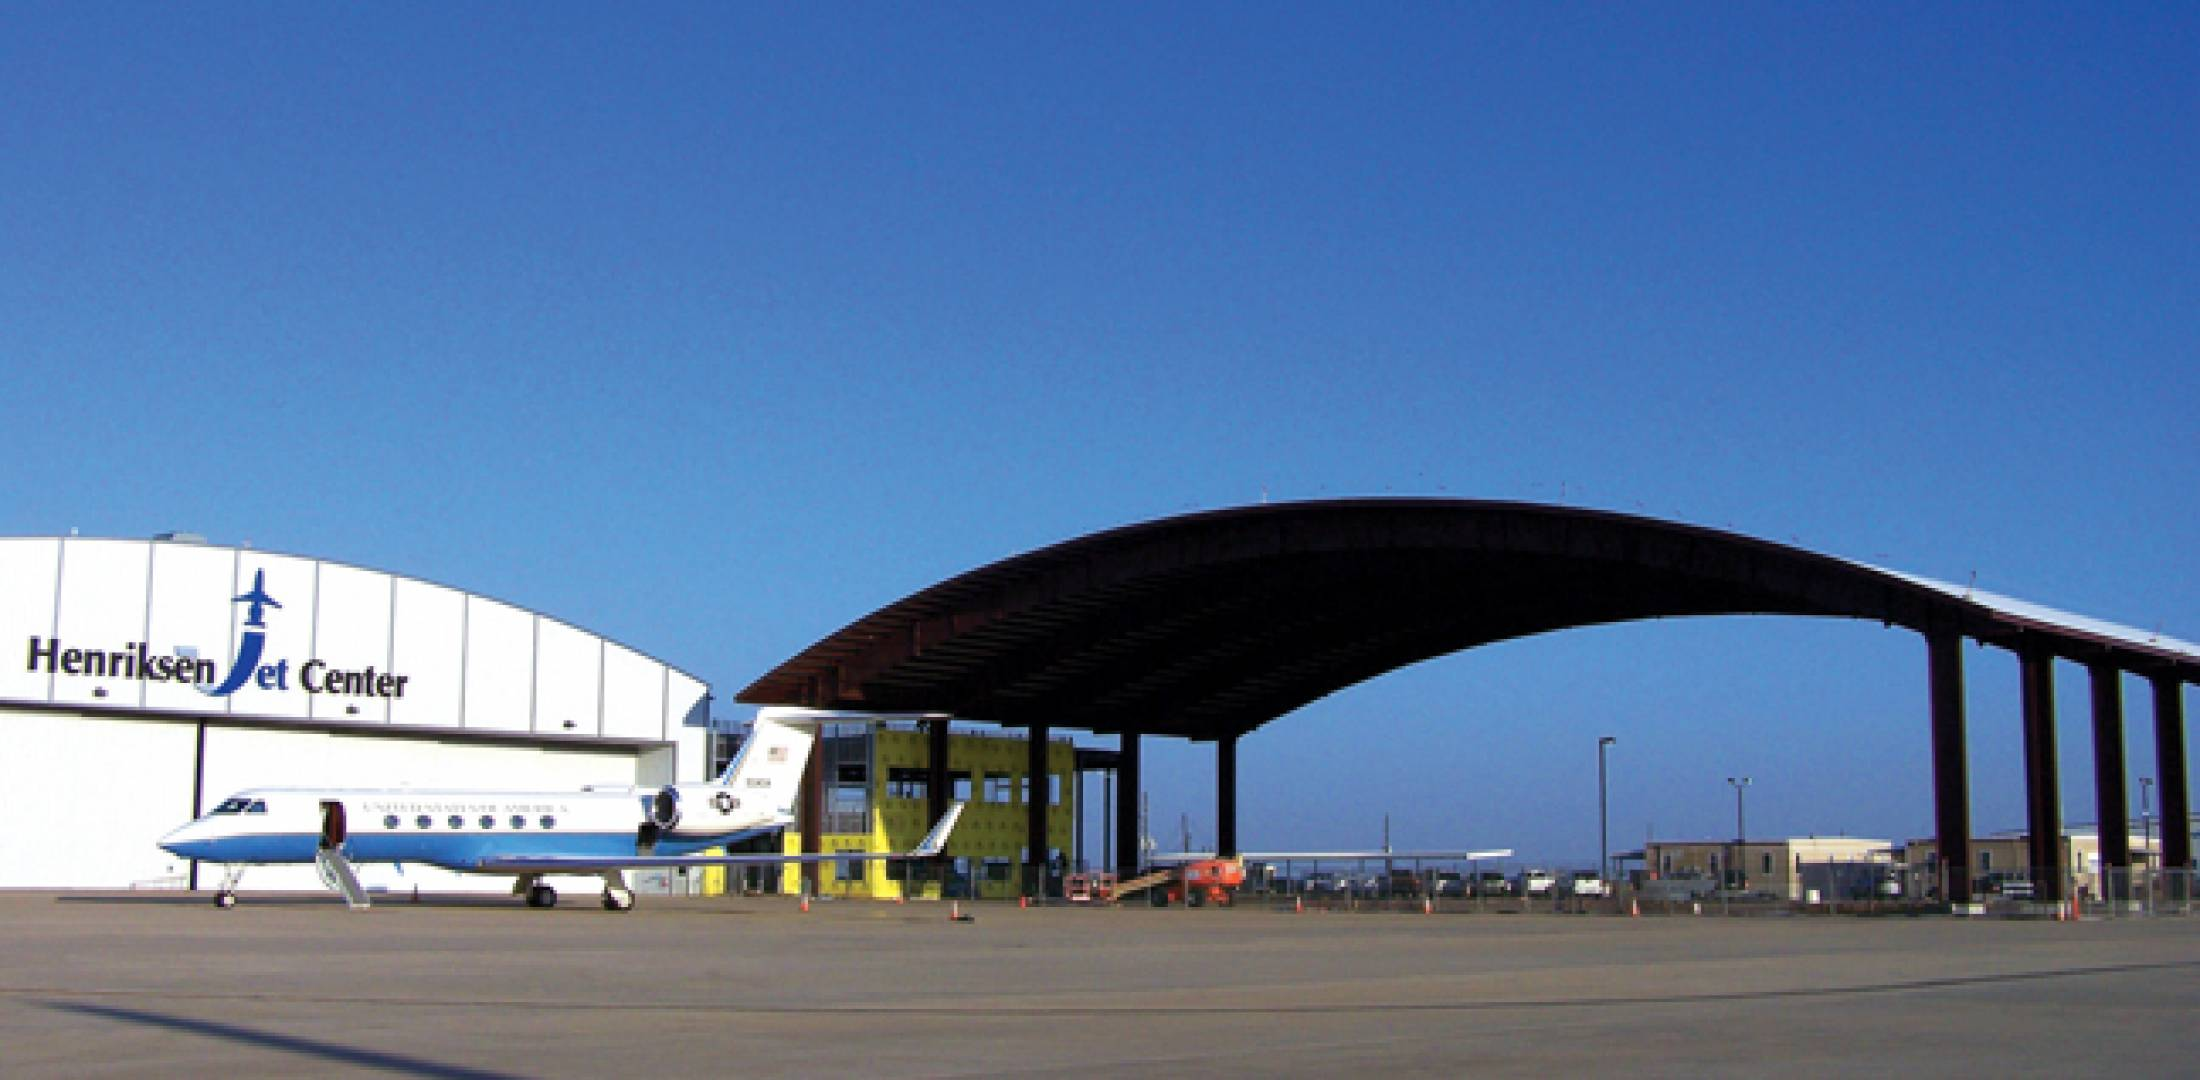 The 32,800-sq-ft canopy at Houston's Henriksen Jet Center can provide shelter for two  BBJs parked side by side.